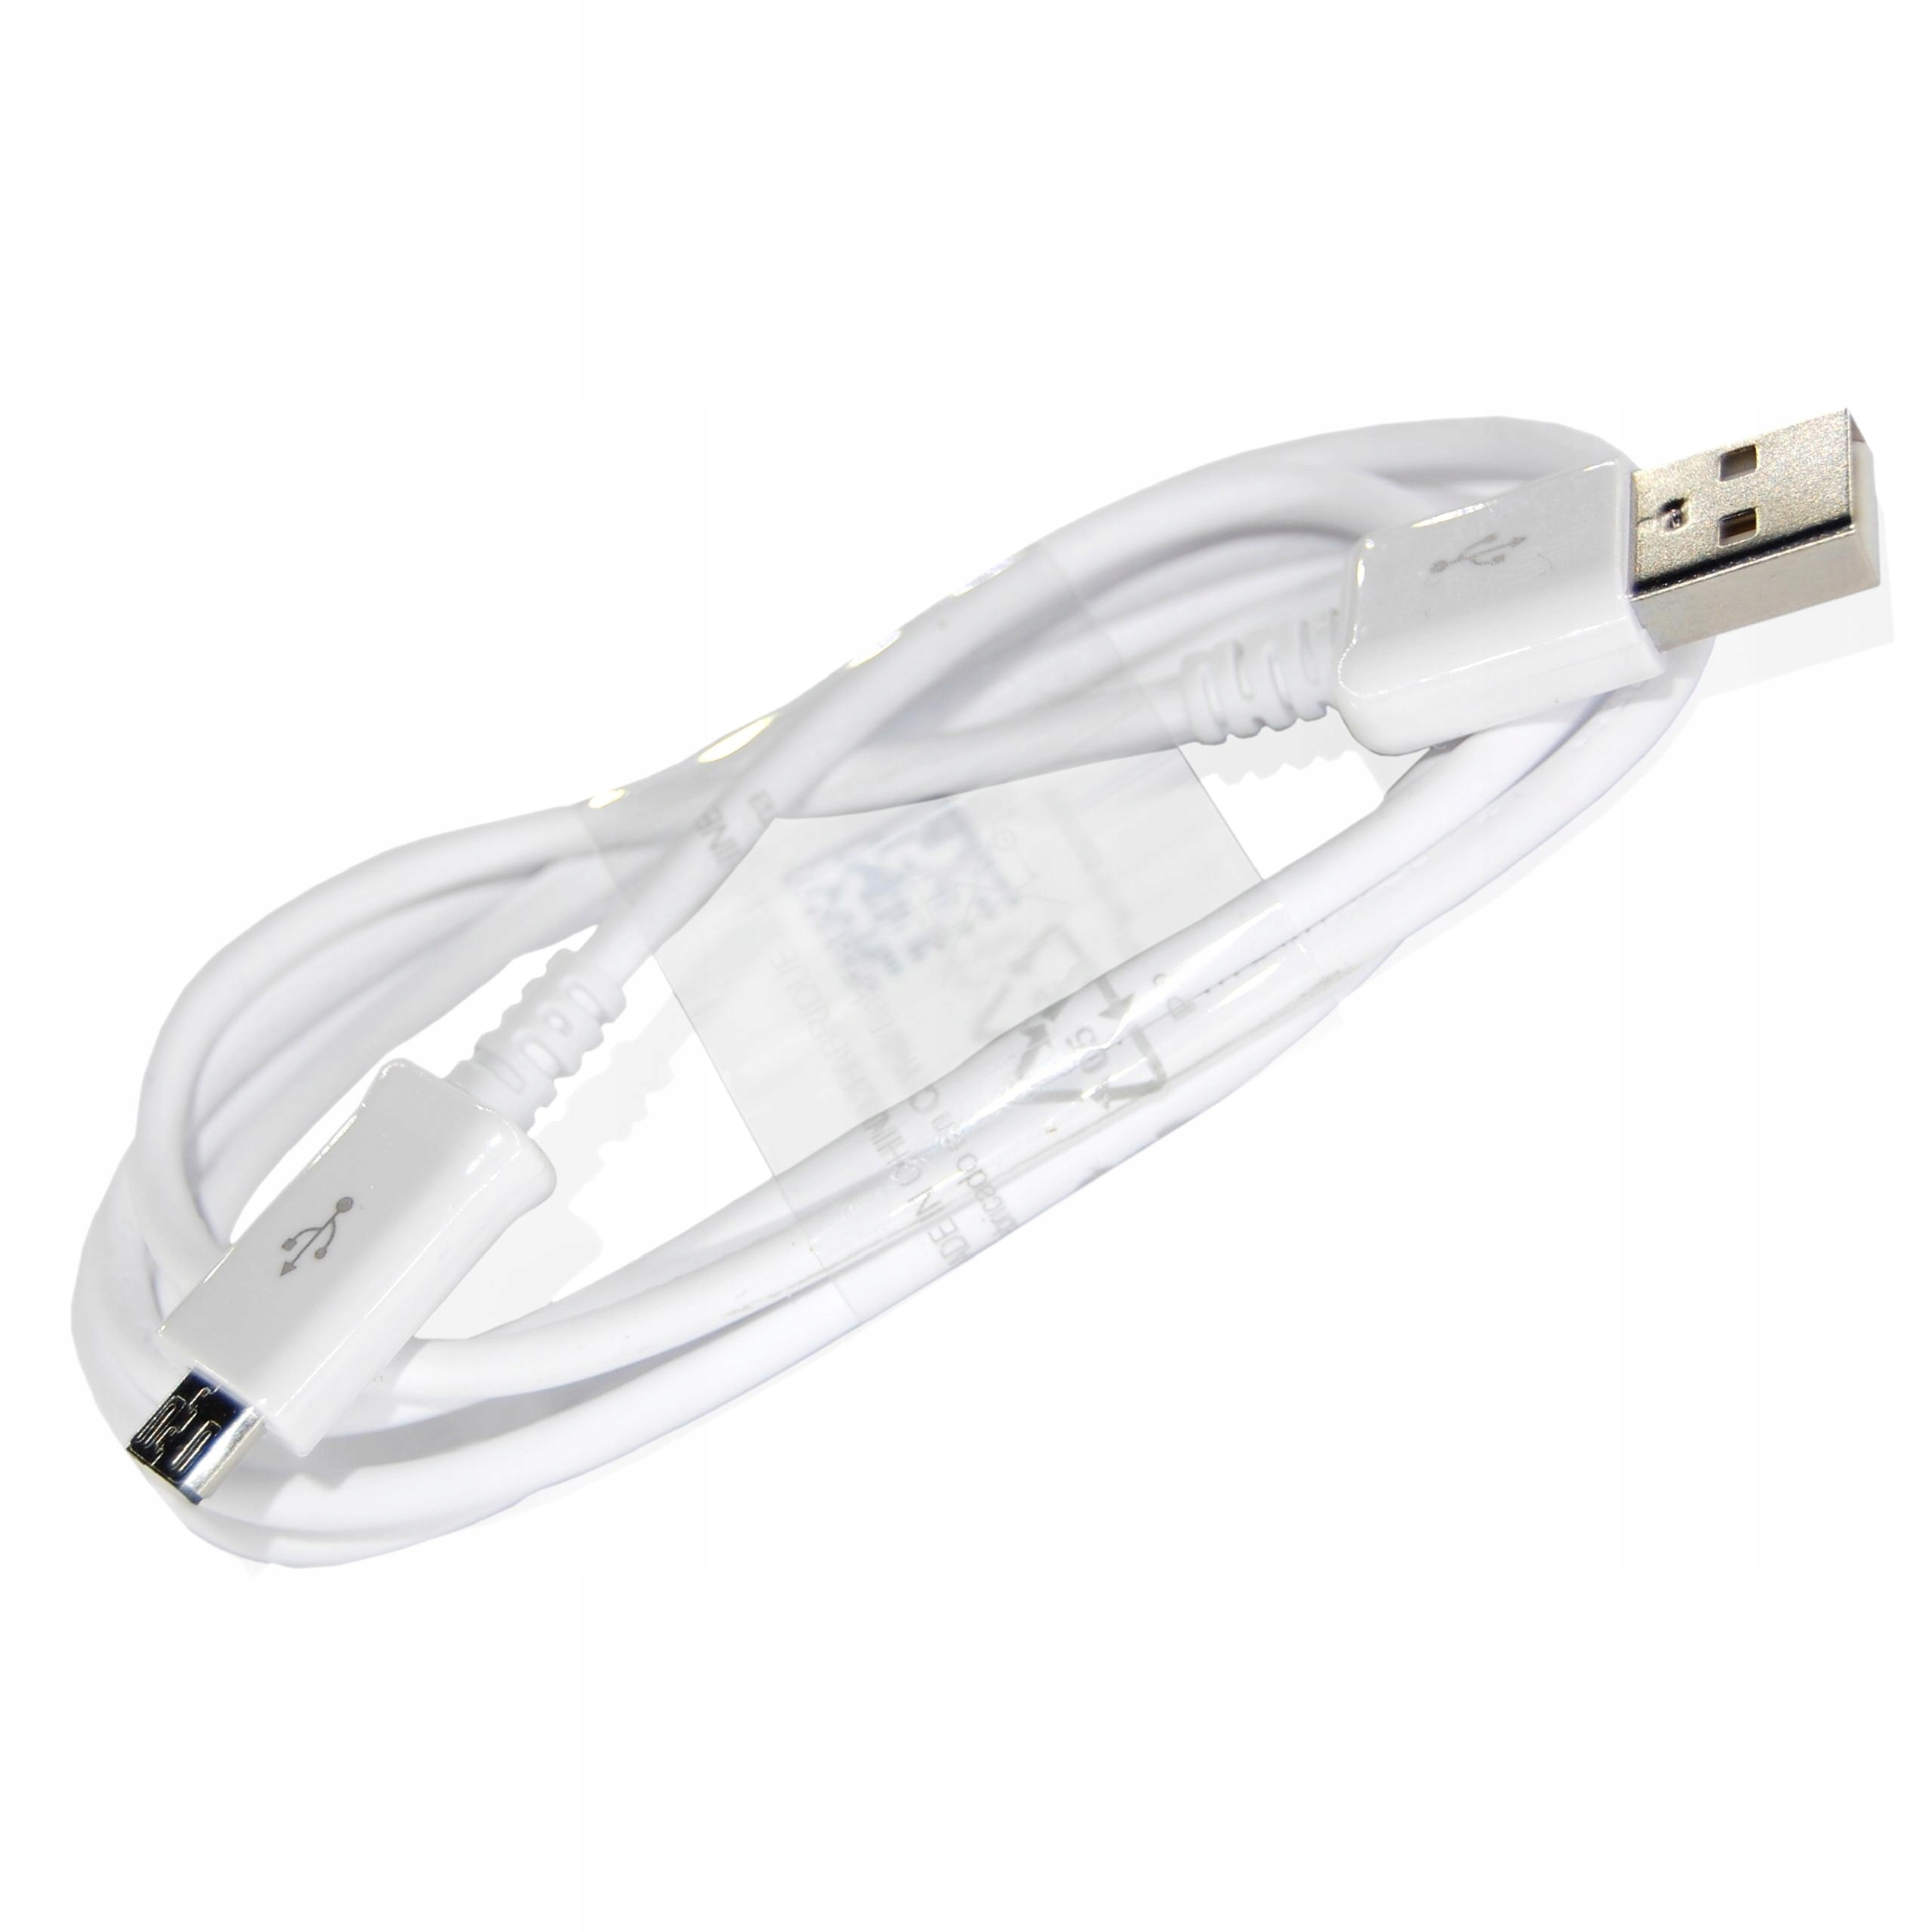 KABEL MICRO USB DO SAMSUNG GALAXY TAB S2 9.7 LTE